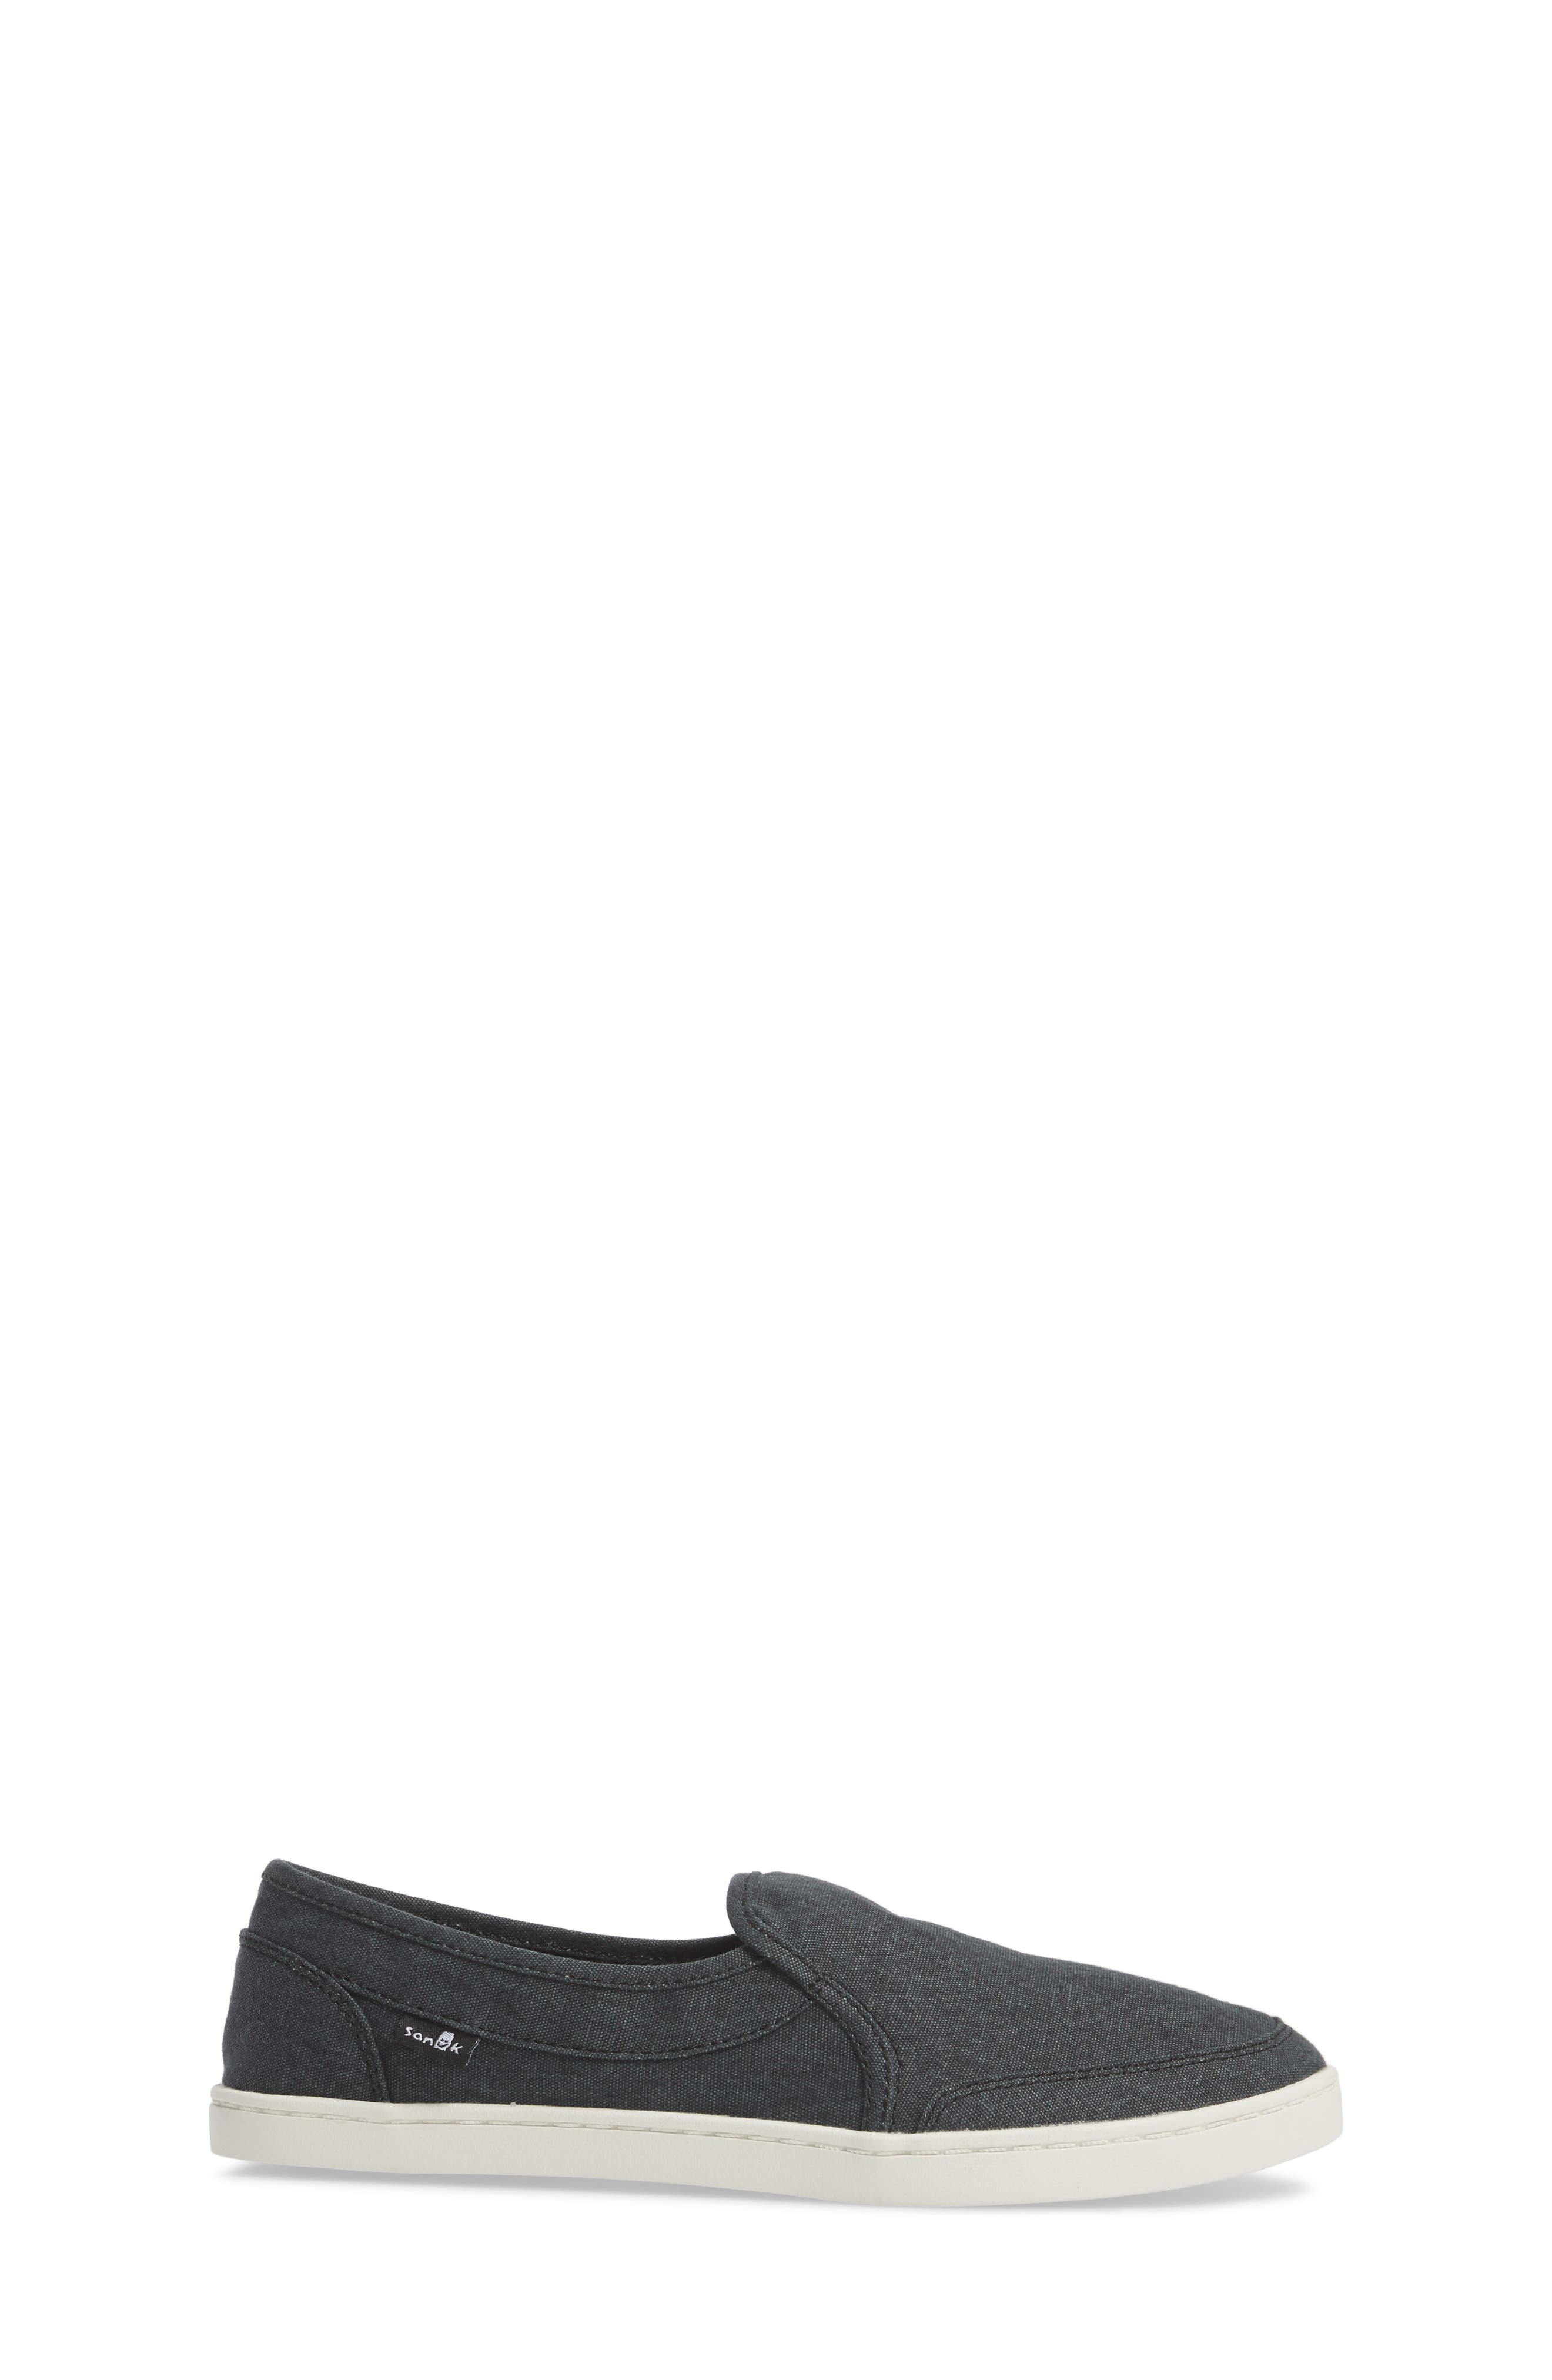 Pair O Dice Slip-On,                             Alternate thumbnail 3, color,                             WASHED BLACK